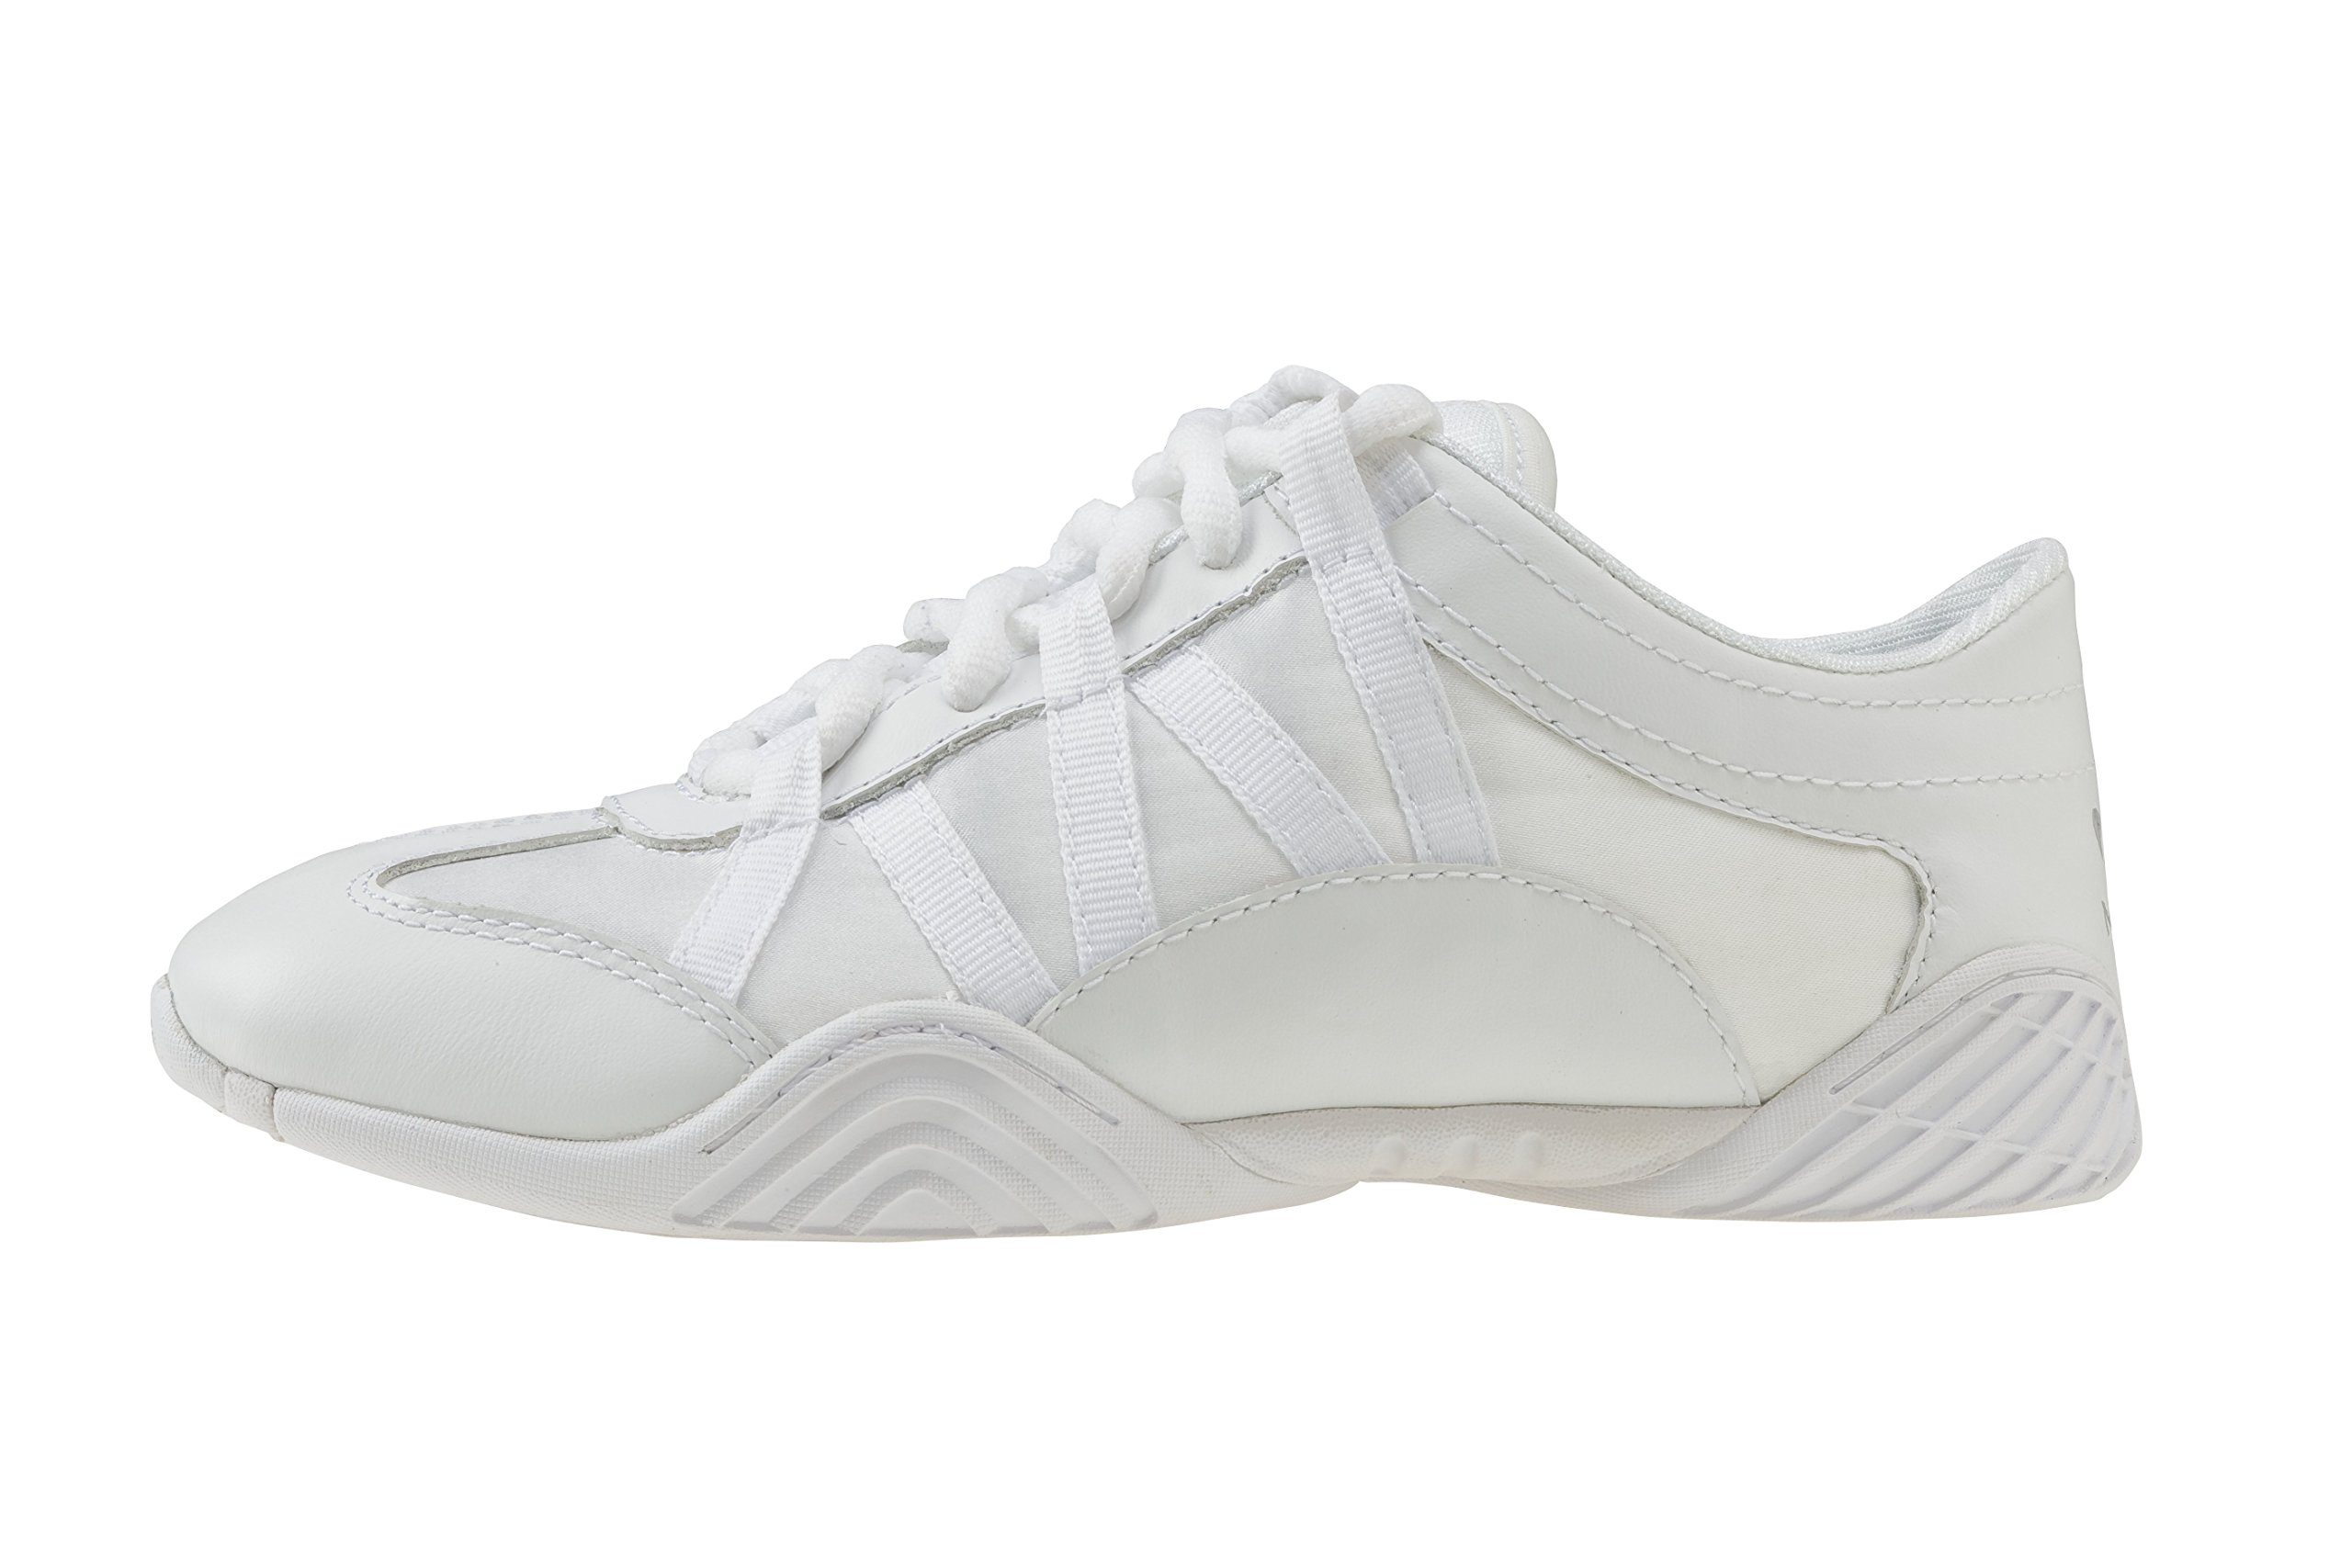 Nfinity Youth Evolution Cheer Shoes, White, Y13 by Nfinity (Image #3)